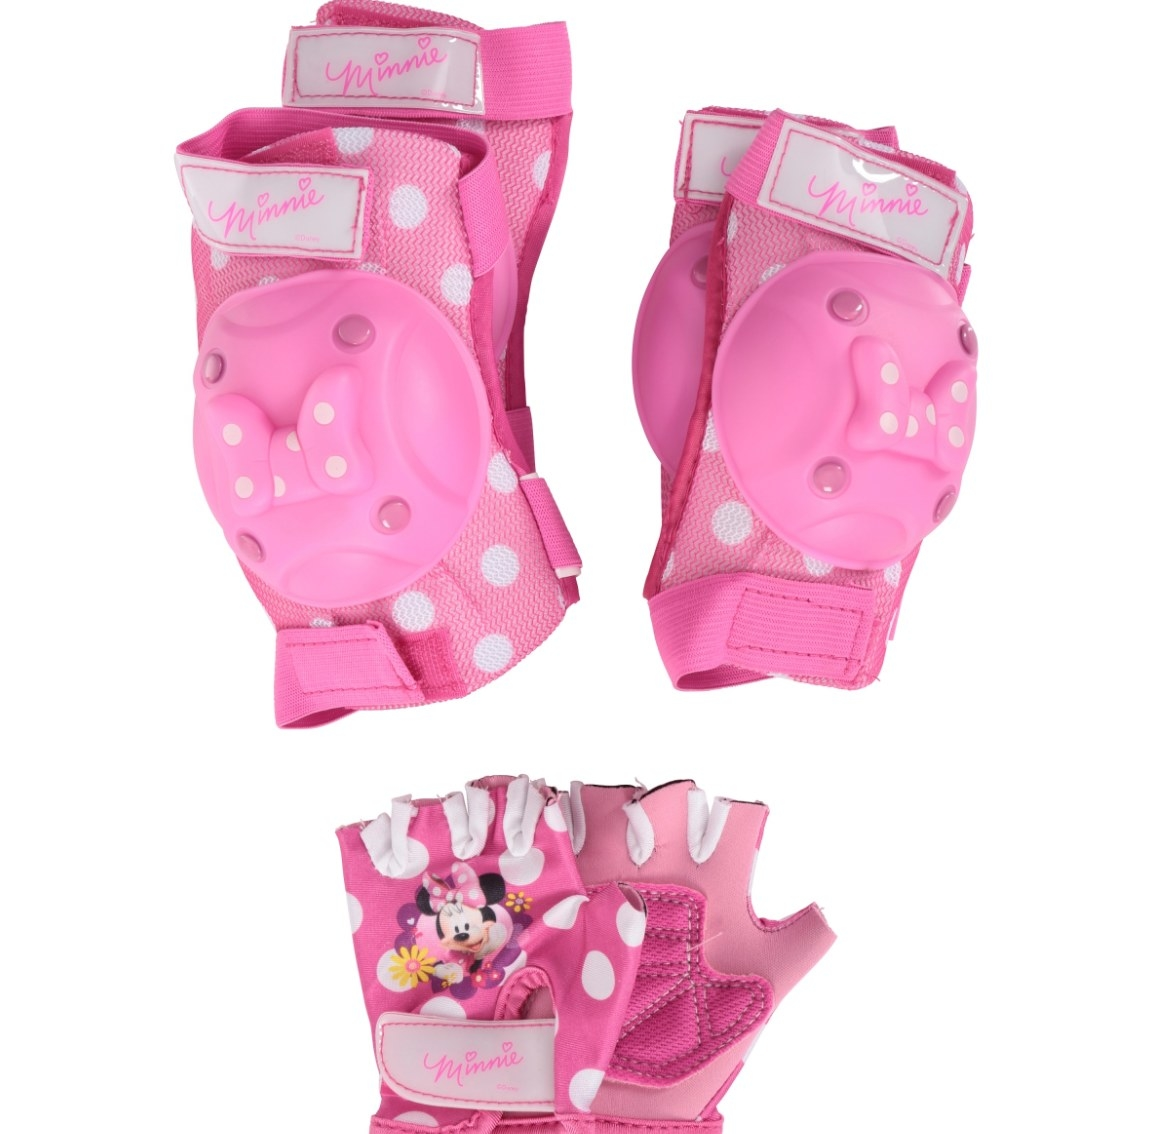 The Minnie Mouse protective pad and glove set in pink